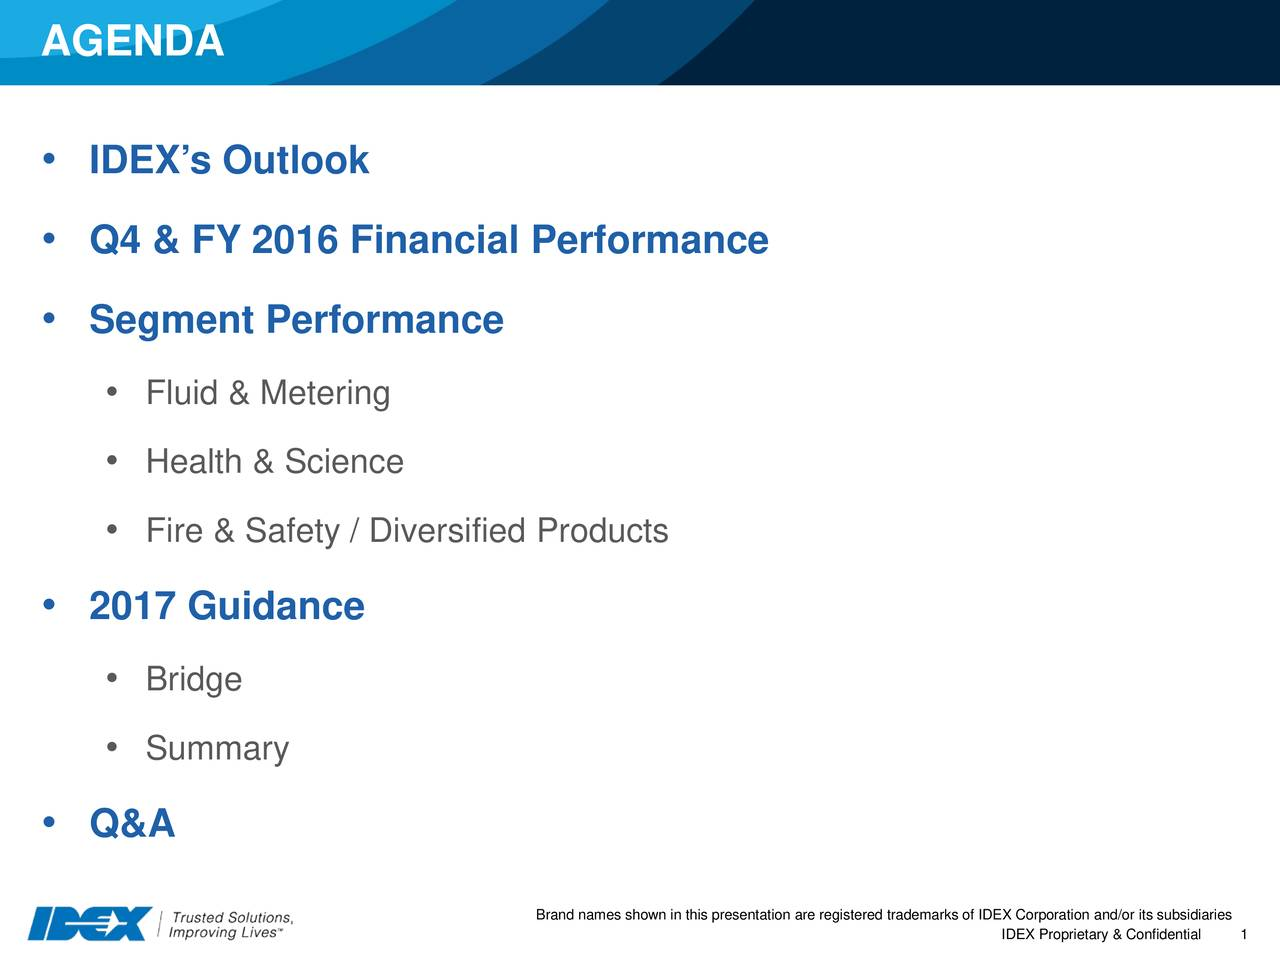 IDEXs Outlook Q4 & FY 2016 Financial Performance Segment Performance Fluid & Metering Health & Science Fire & Safety / Diversified Products 2017 Guidance Bridge Summary Q&A Brand names shown in this presIDEX Proprietary1& Confidentialrks of IDEX Corporation and/or its subsidiaries